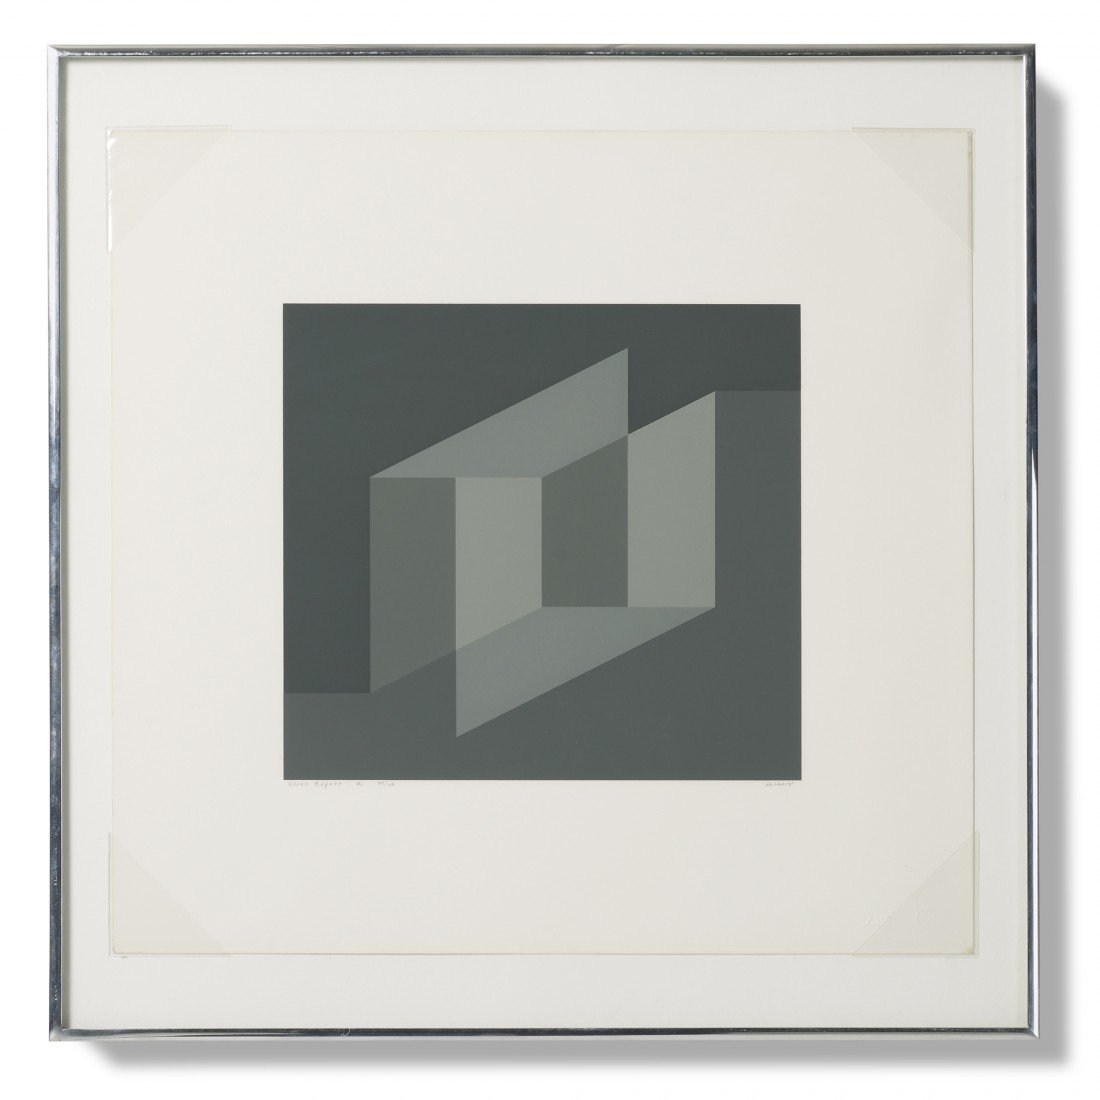 112: Josef Albers Never Before a